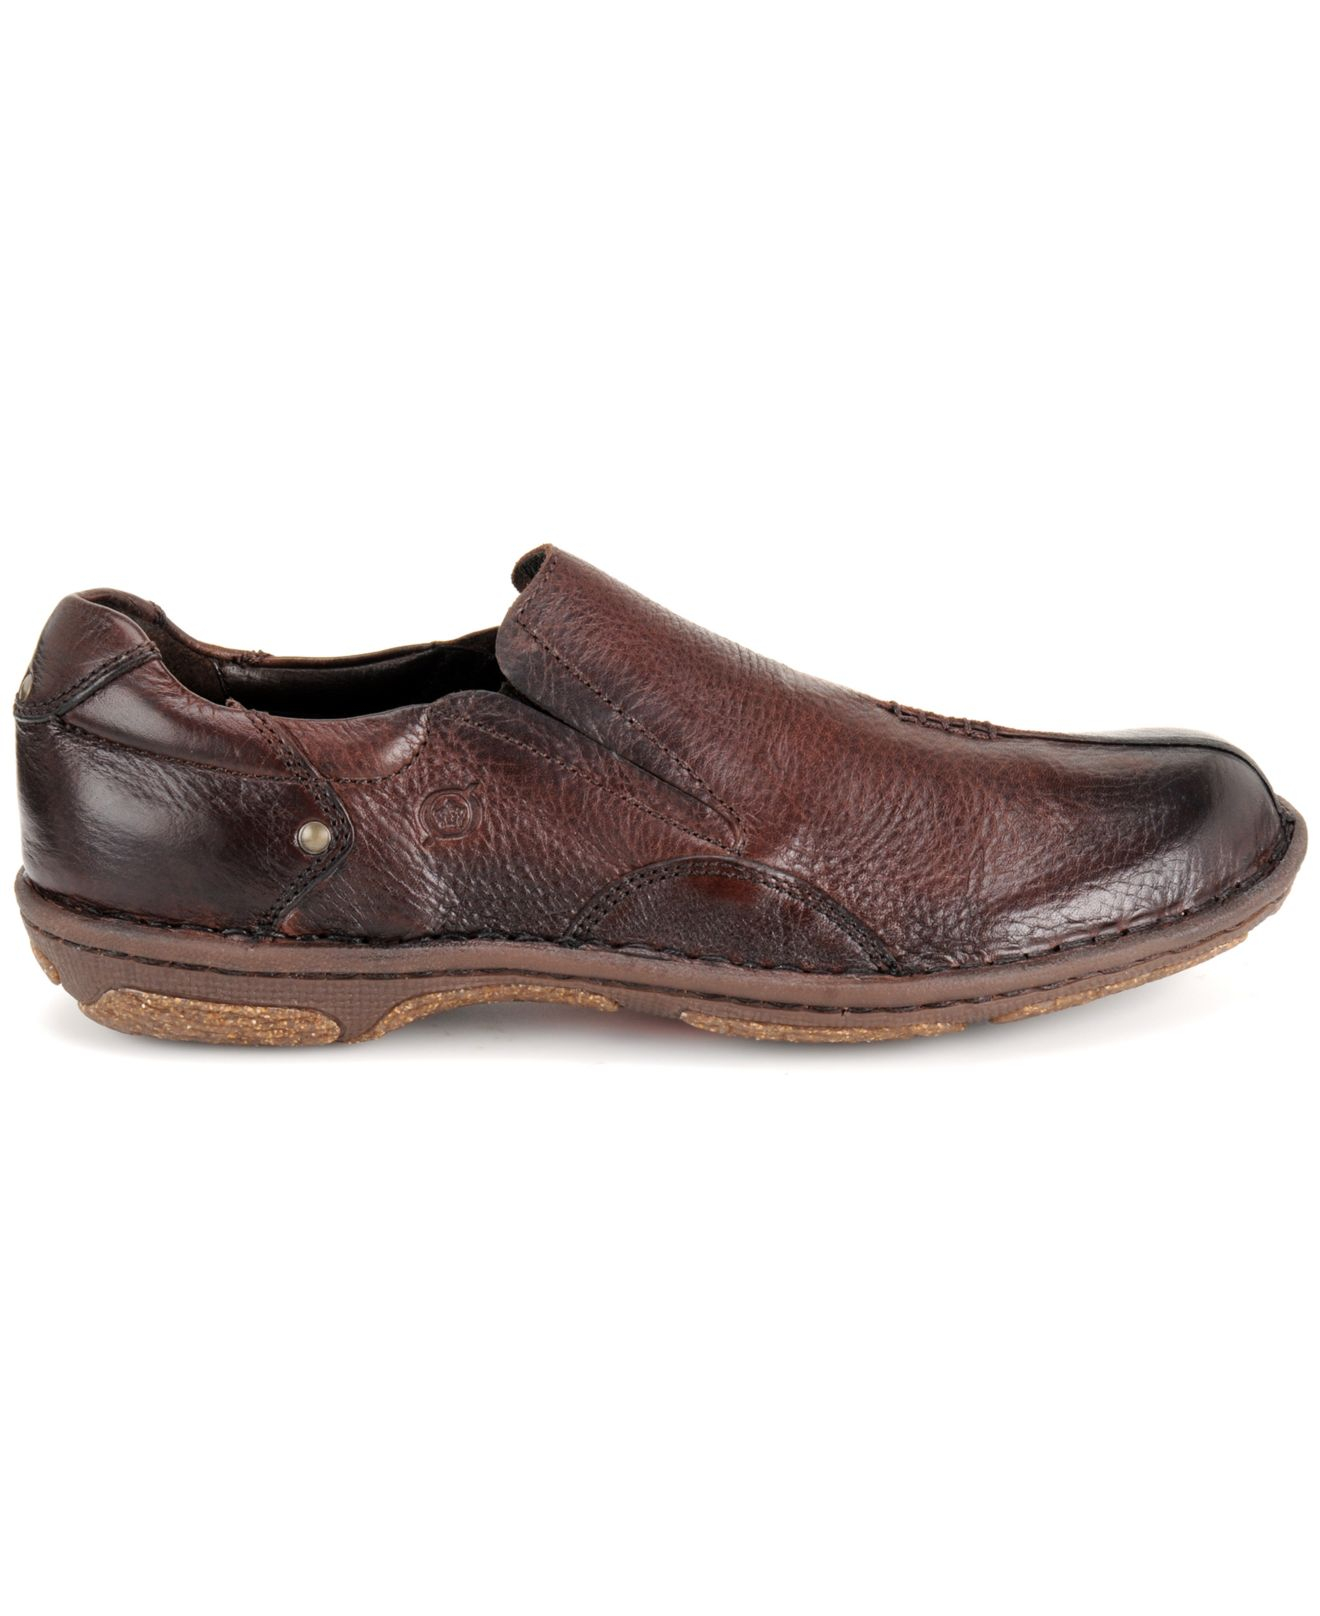 born rizzo split toe slip on shoes in brown for lyst